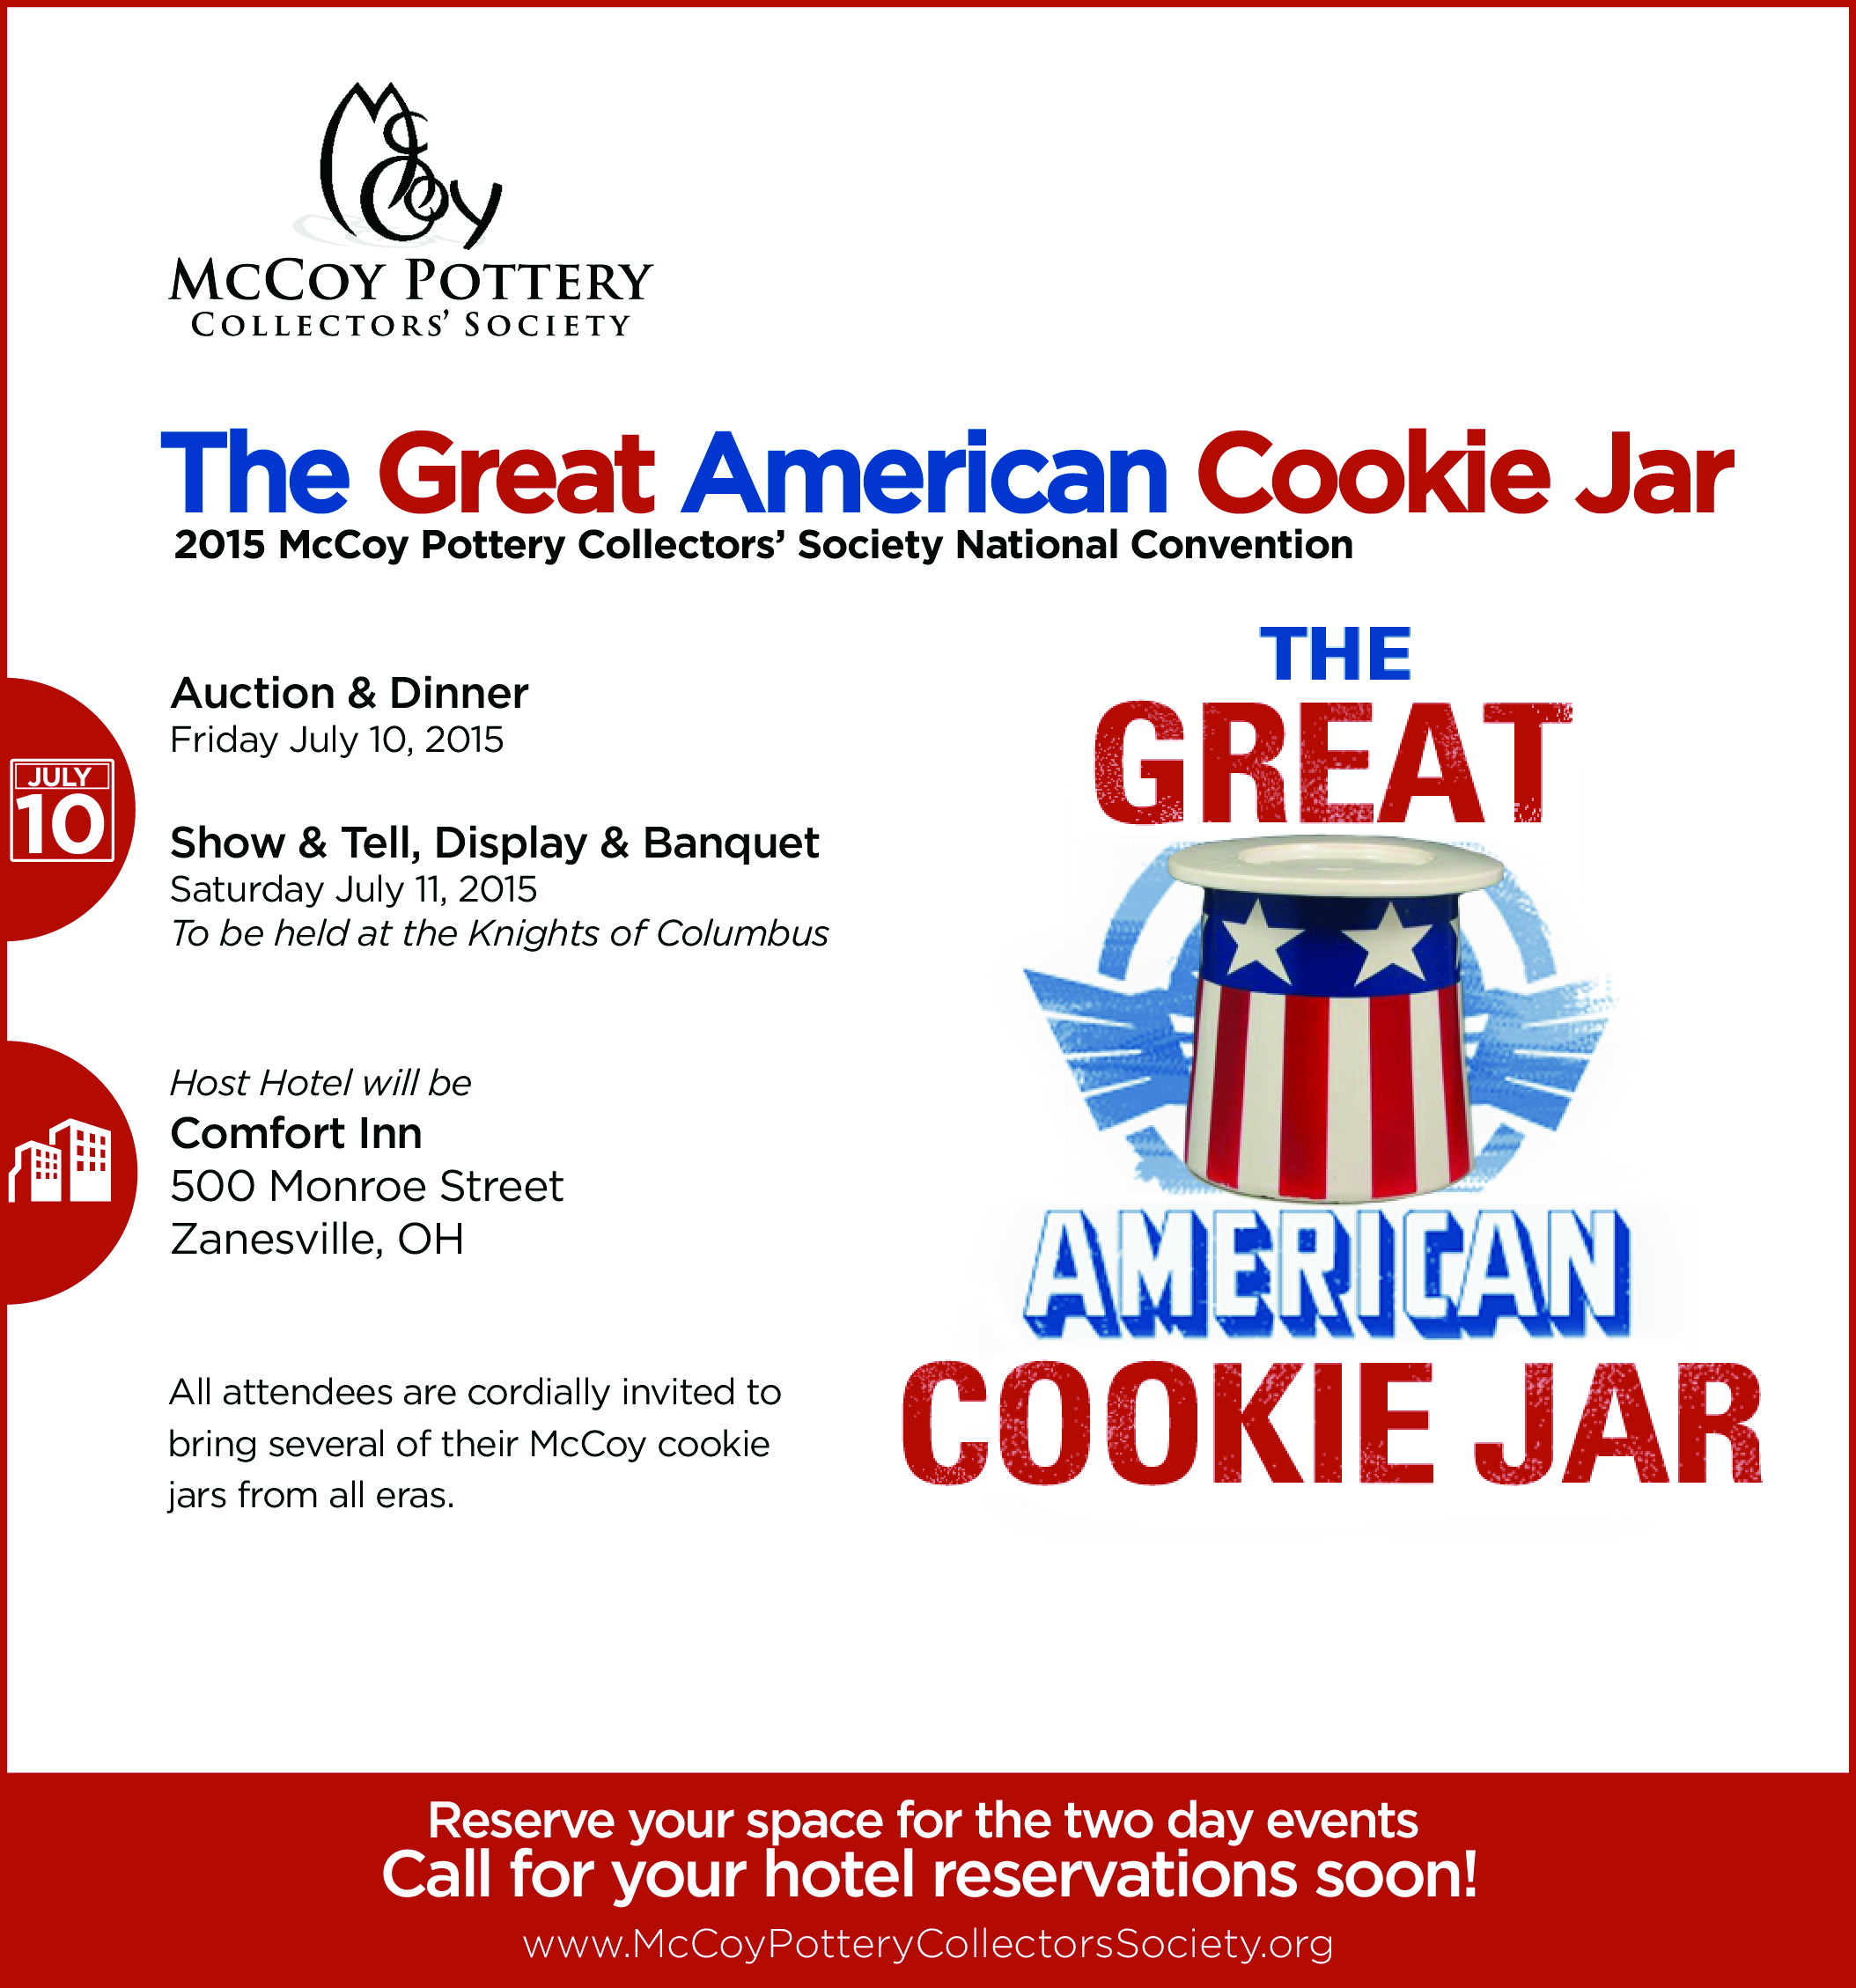 2015 McCoy Pottery Collectors' Society National Convention Ad